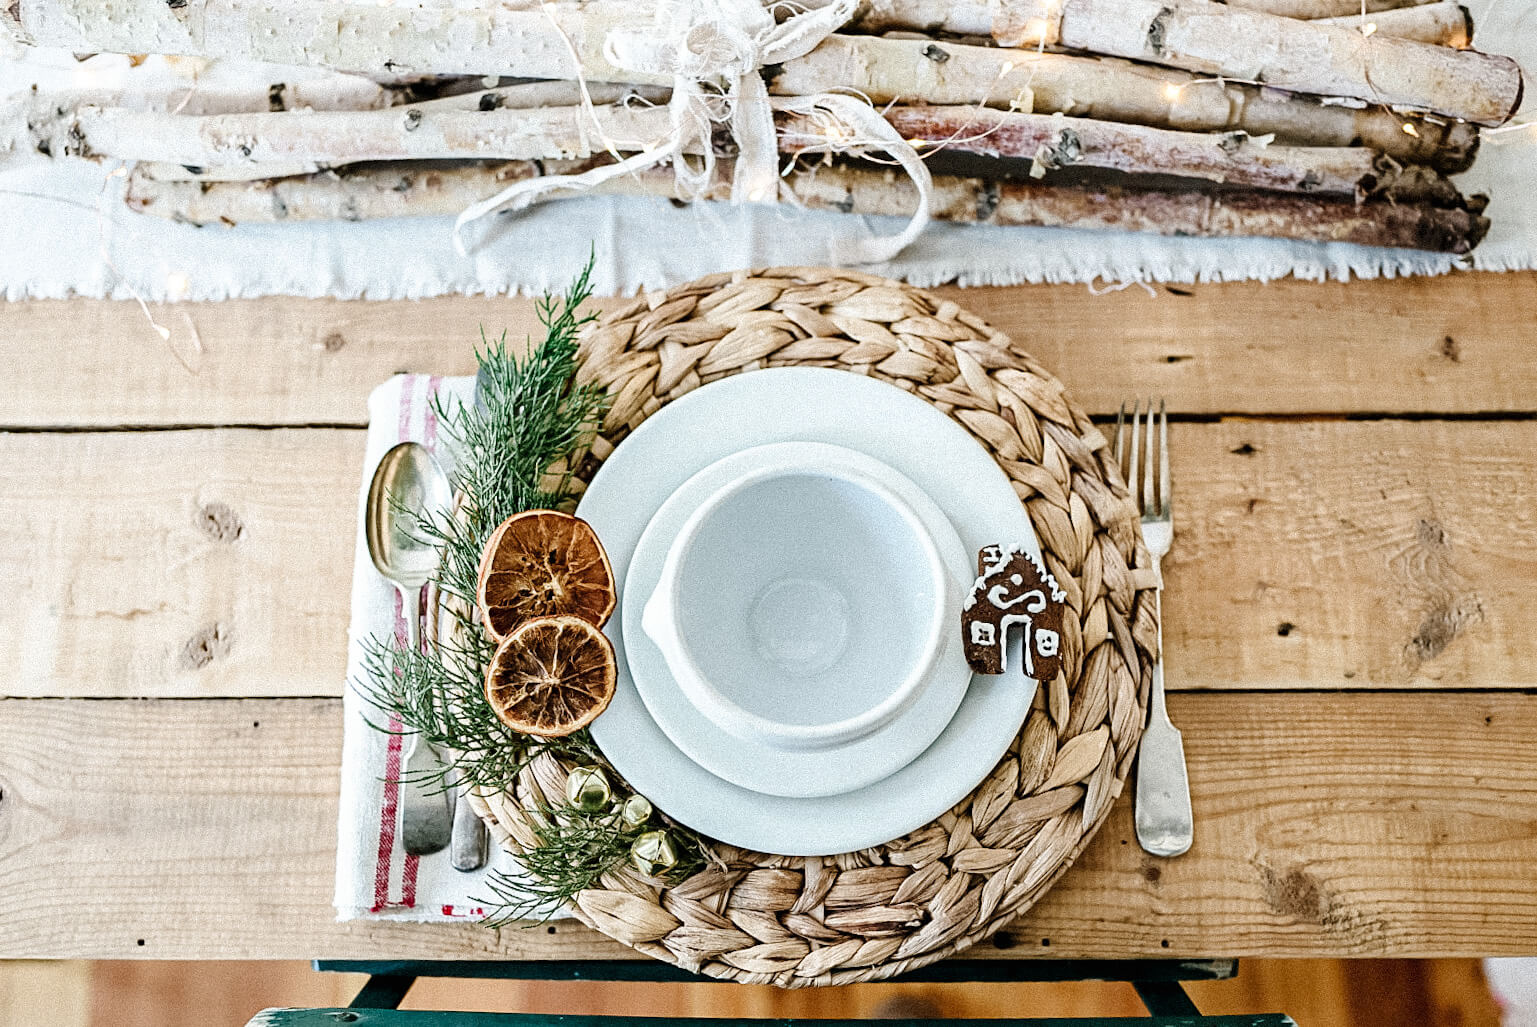 mug hugger and table setting for Christmas